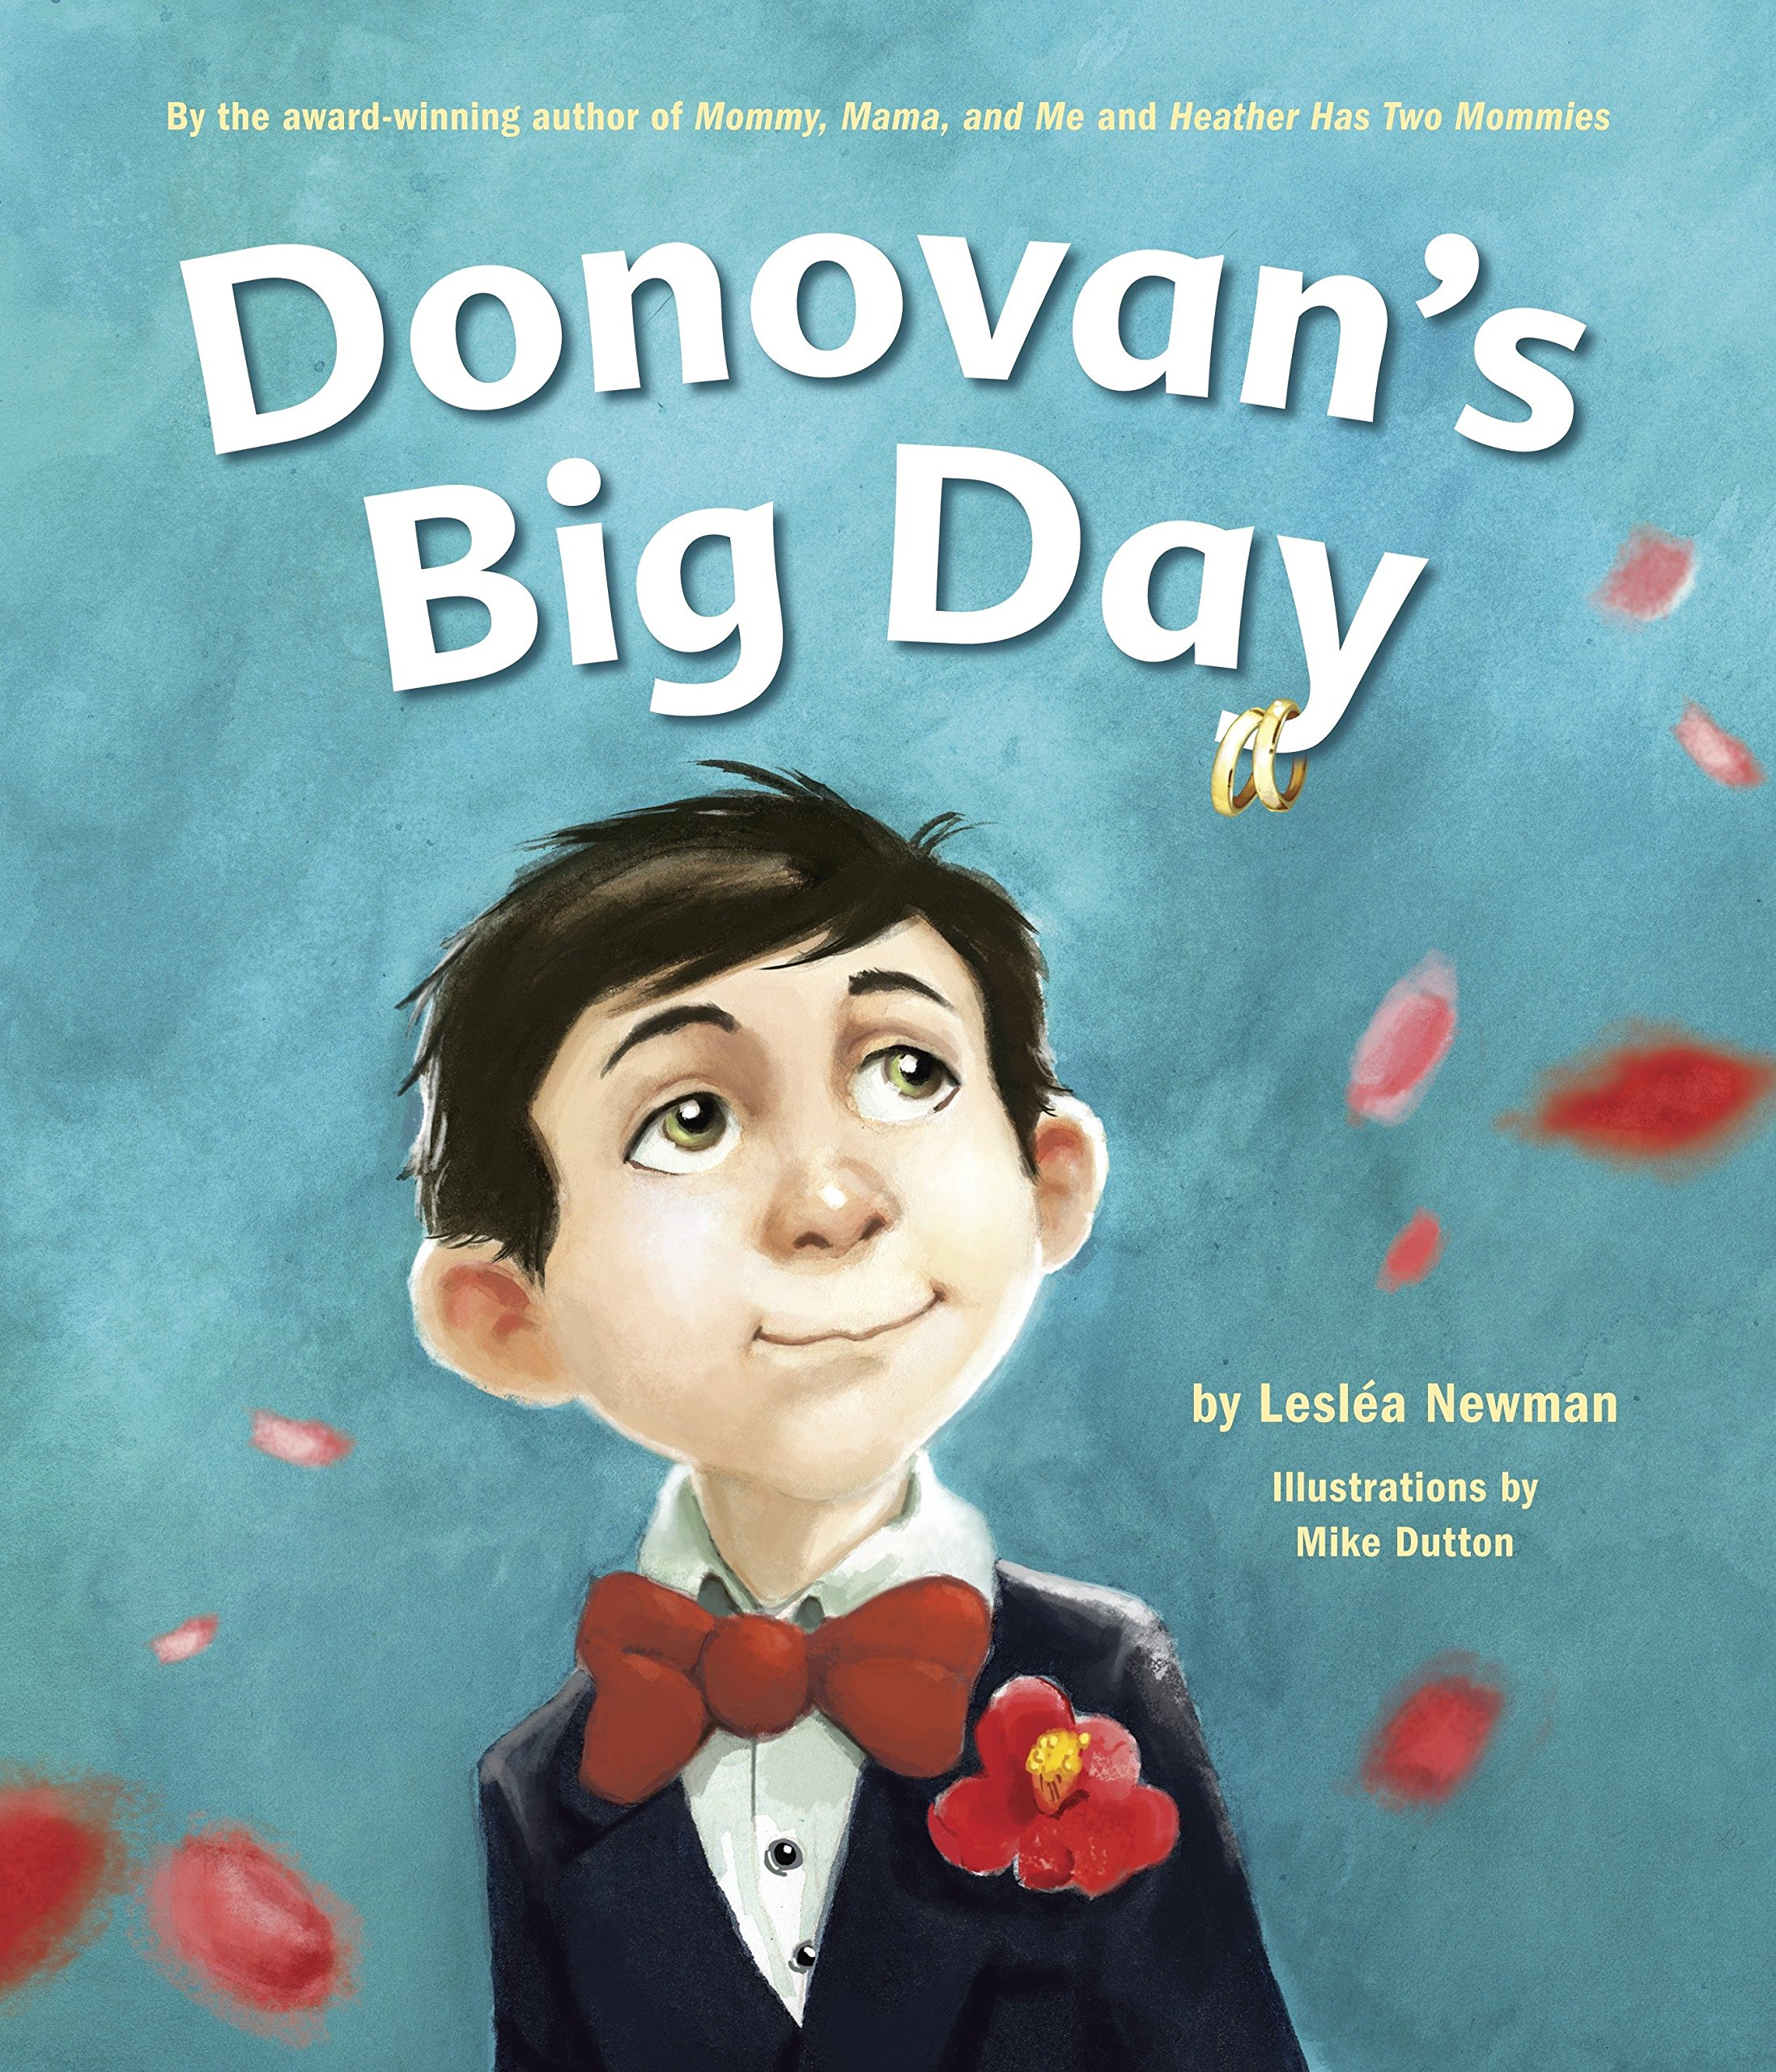 Donovan's Big Day: Amazon.co.uk: Leslea Newman, Mike Dutton: 9781582463322:  Books